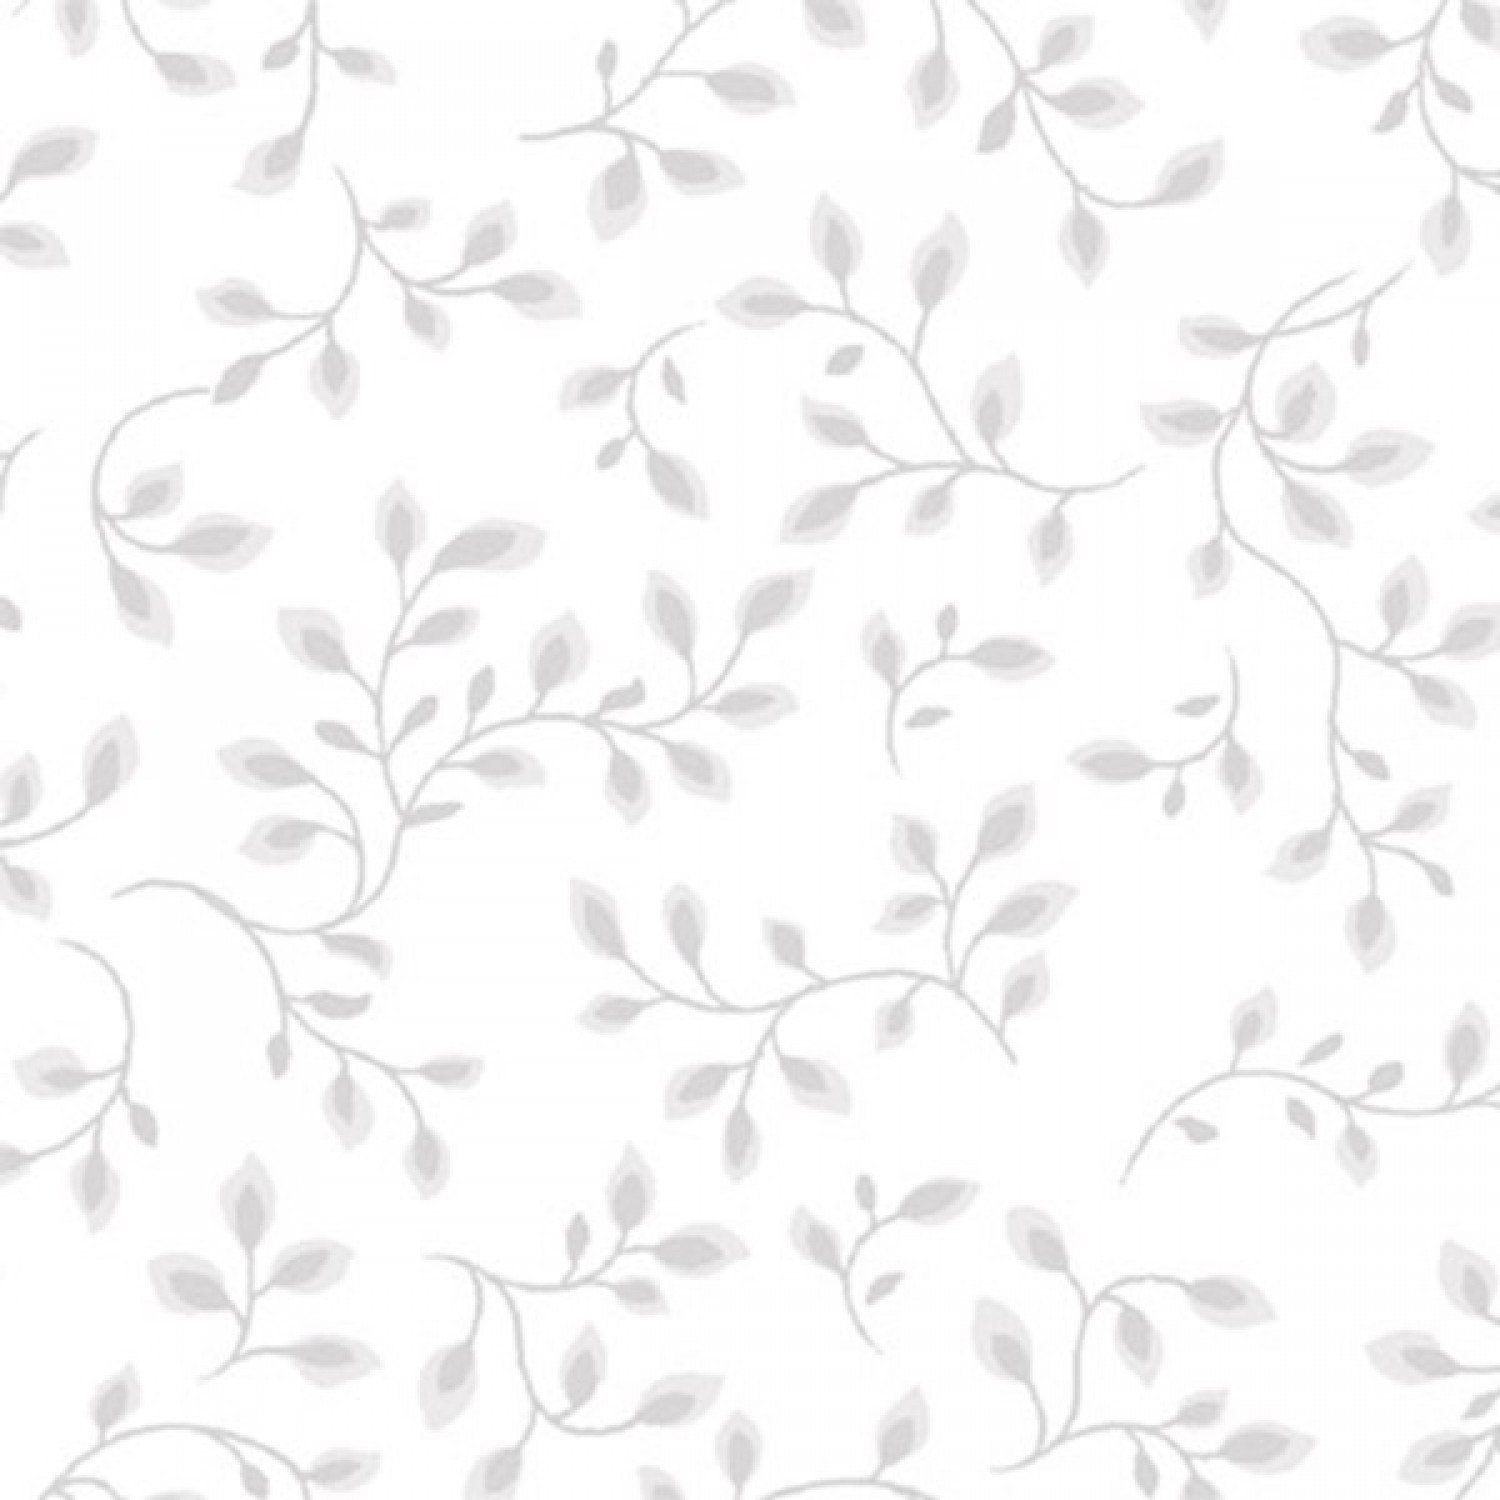 108 inch wide backing white grey vine fabric fabric from Calico Backing Fabric 108 108 inch wide backing white grey vine fabric